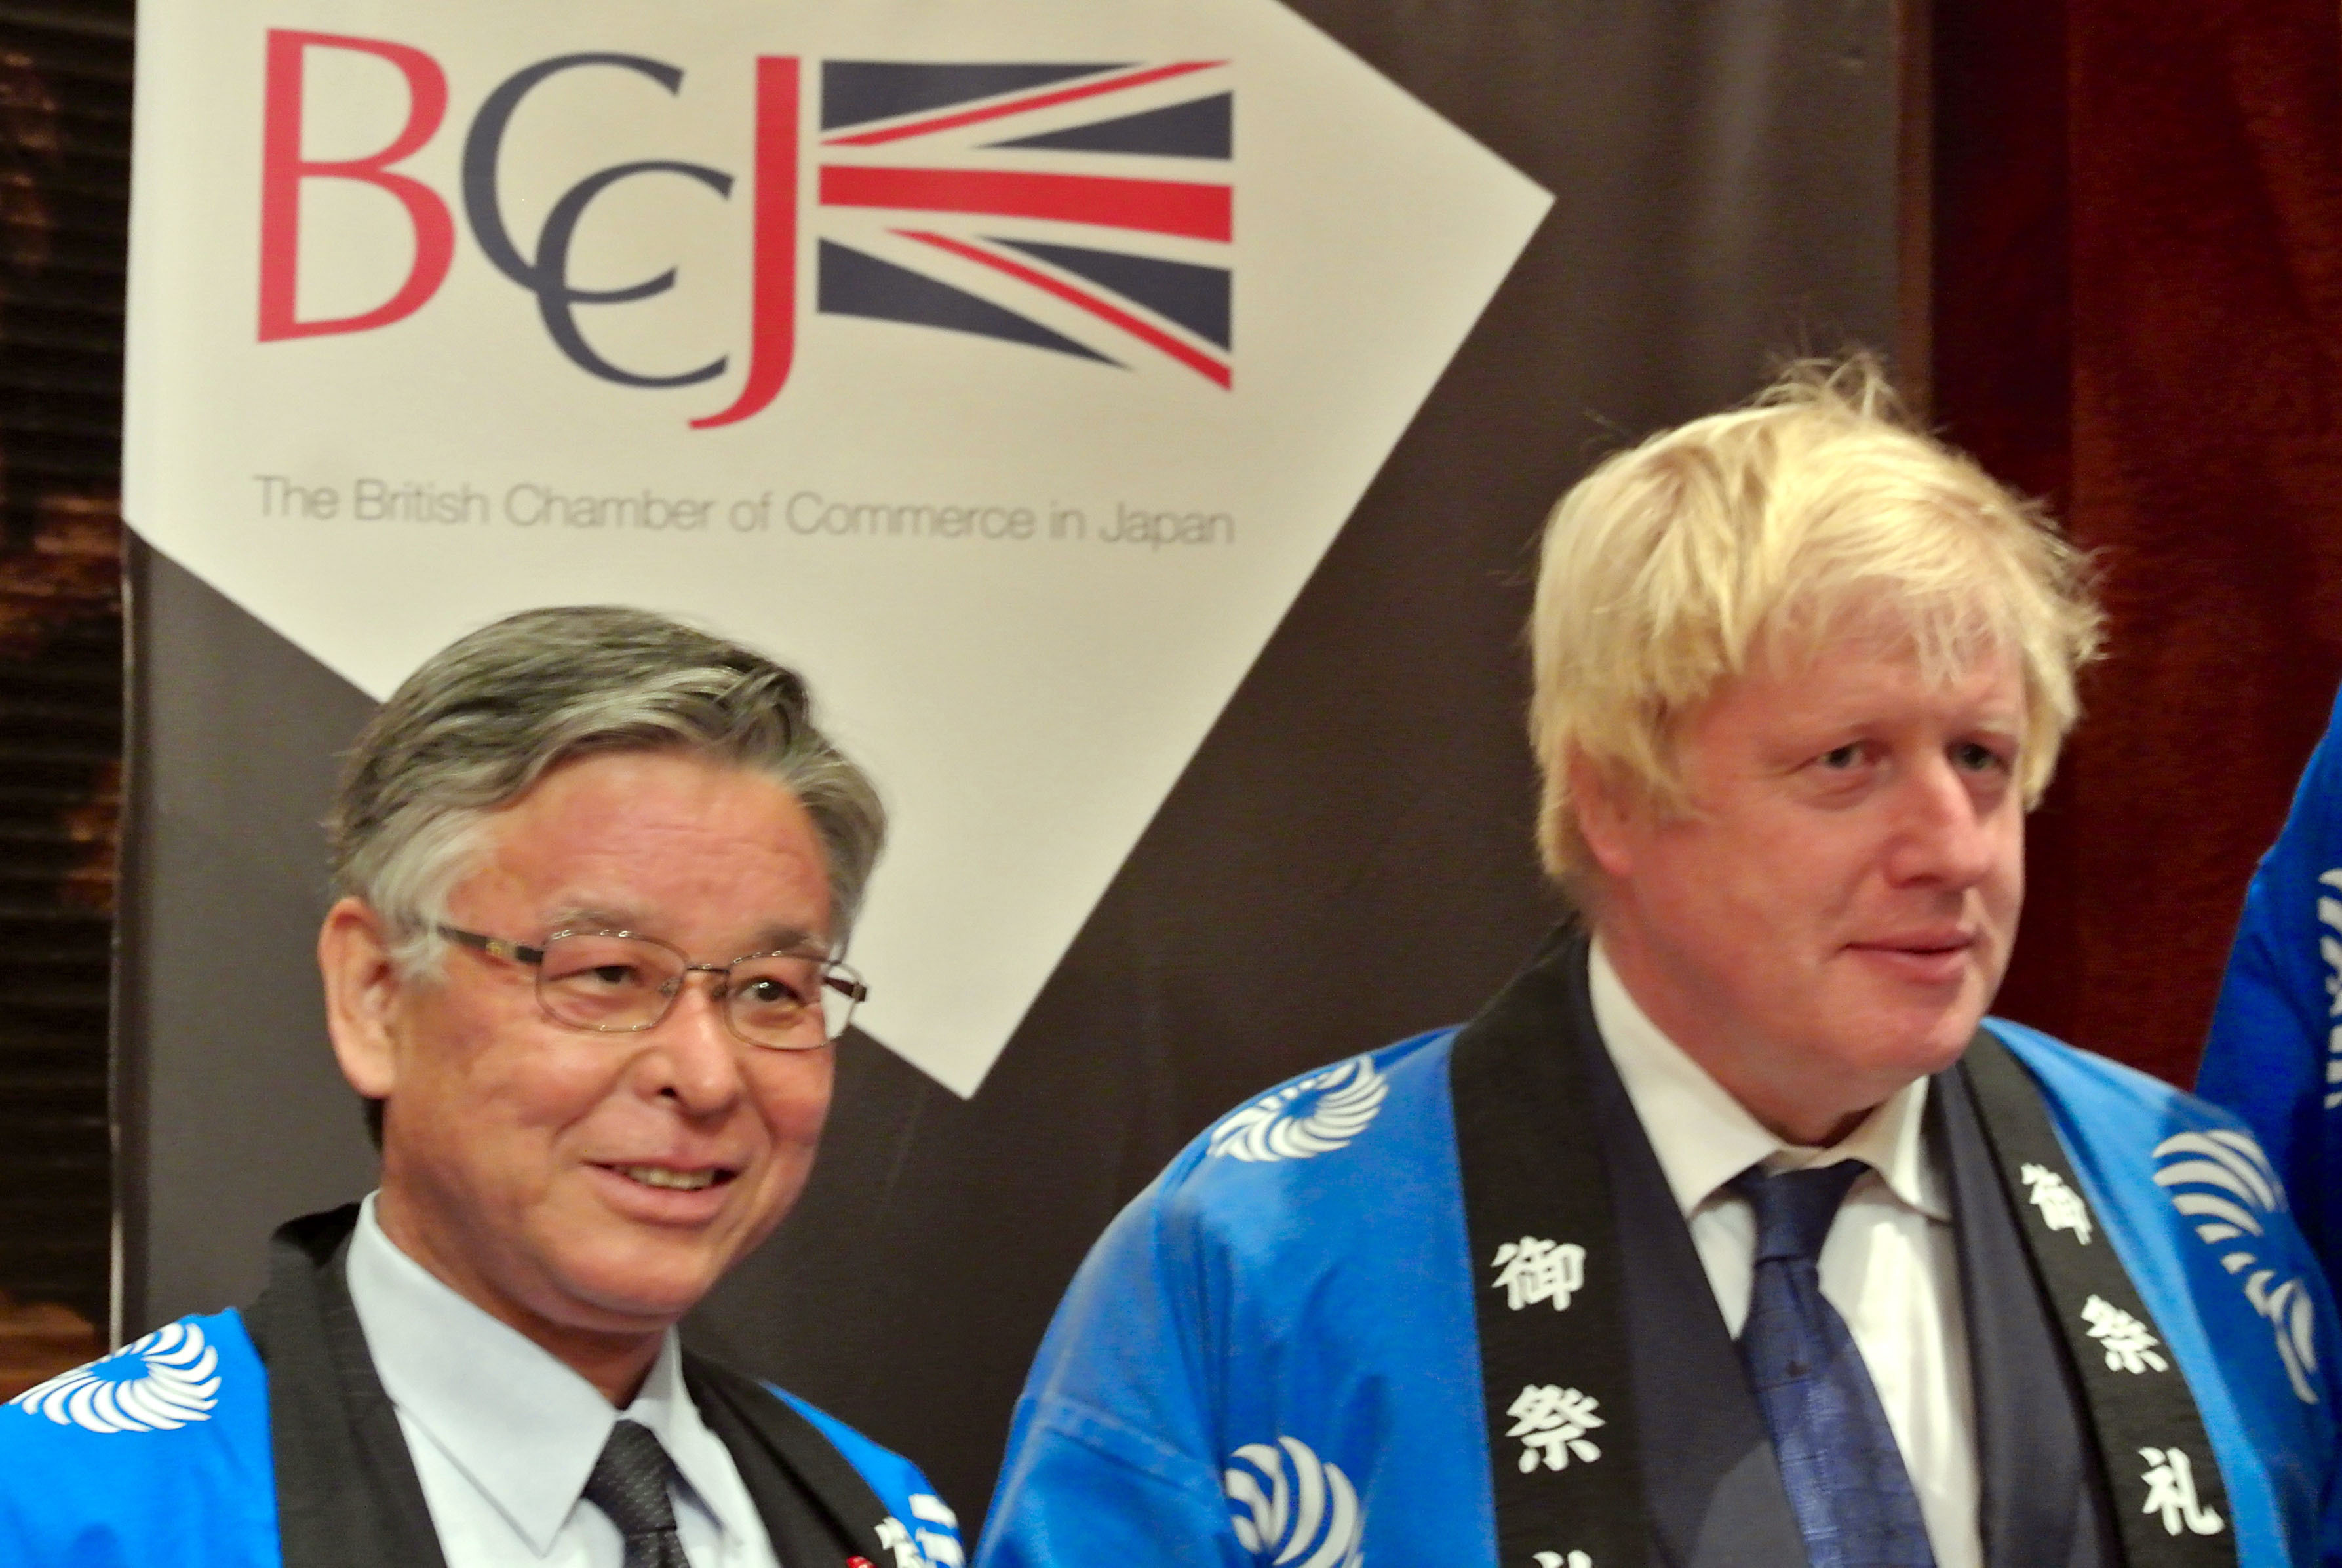 Japan National Tourism Organization President Ryoichi Matsuyama (left) and Mayor of London Boris Johnson prepare to take part in a ceremony to break open a sake barrel at the ANA InterContinental Hotel on Oct. 15 as part of a British Chamber of Commerce in Japan event. | BCCJ NINA OIKI